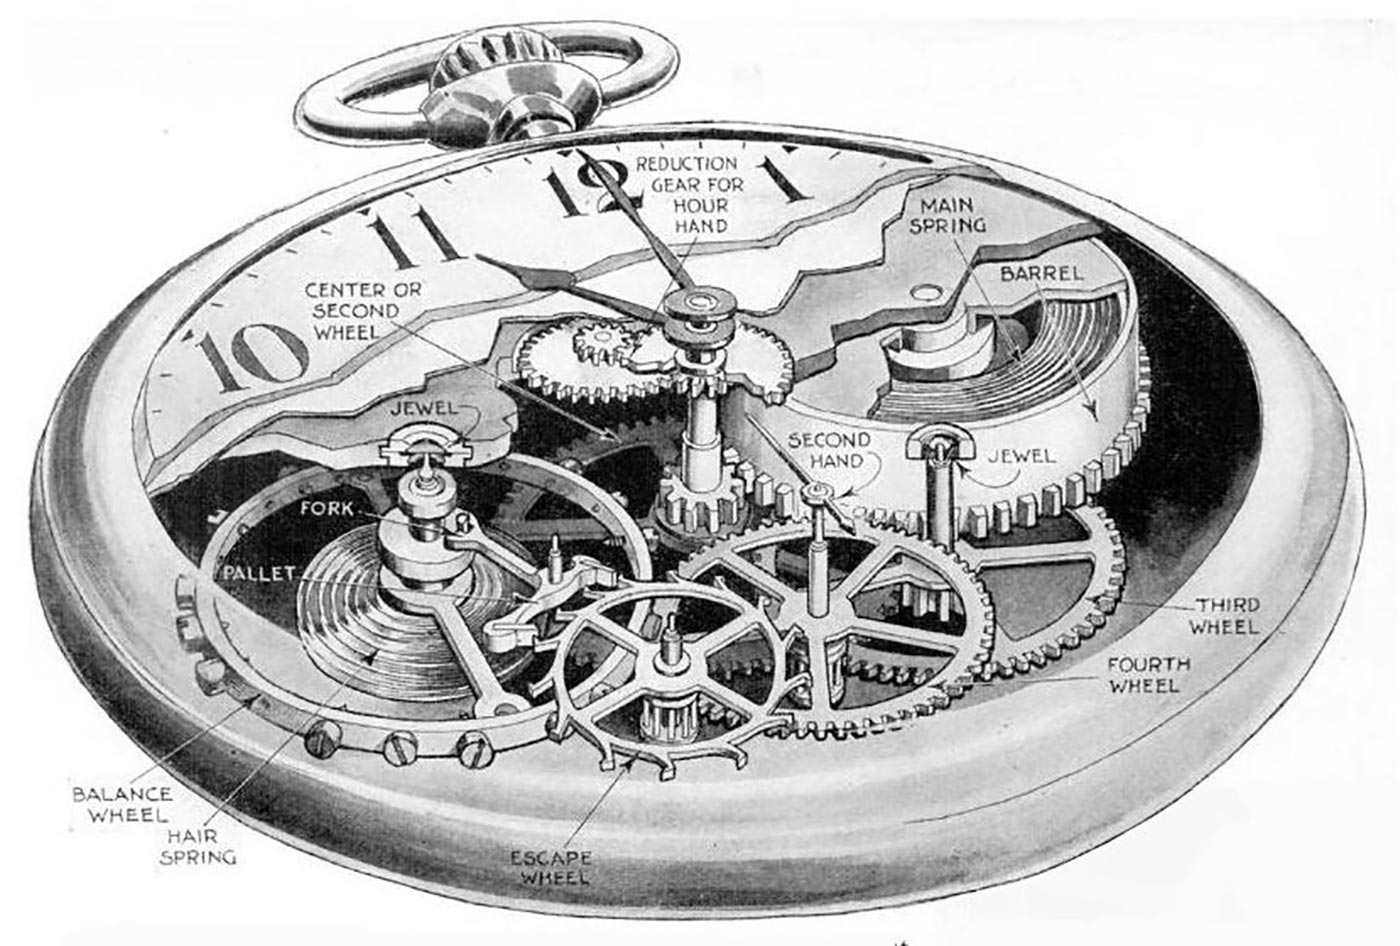 Cutaway drawing of a pocketwatch movement.